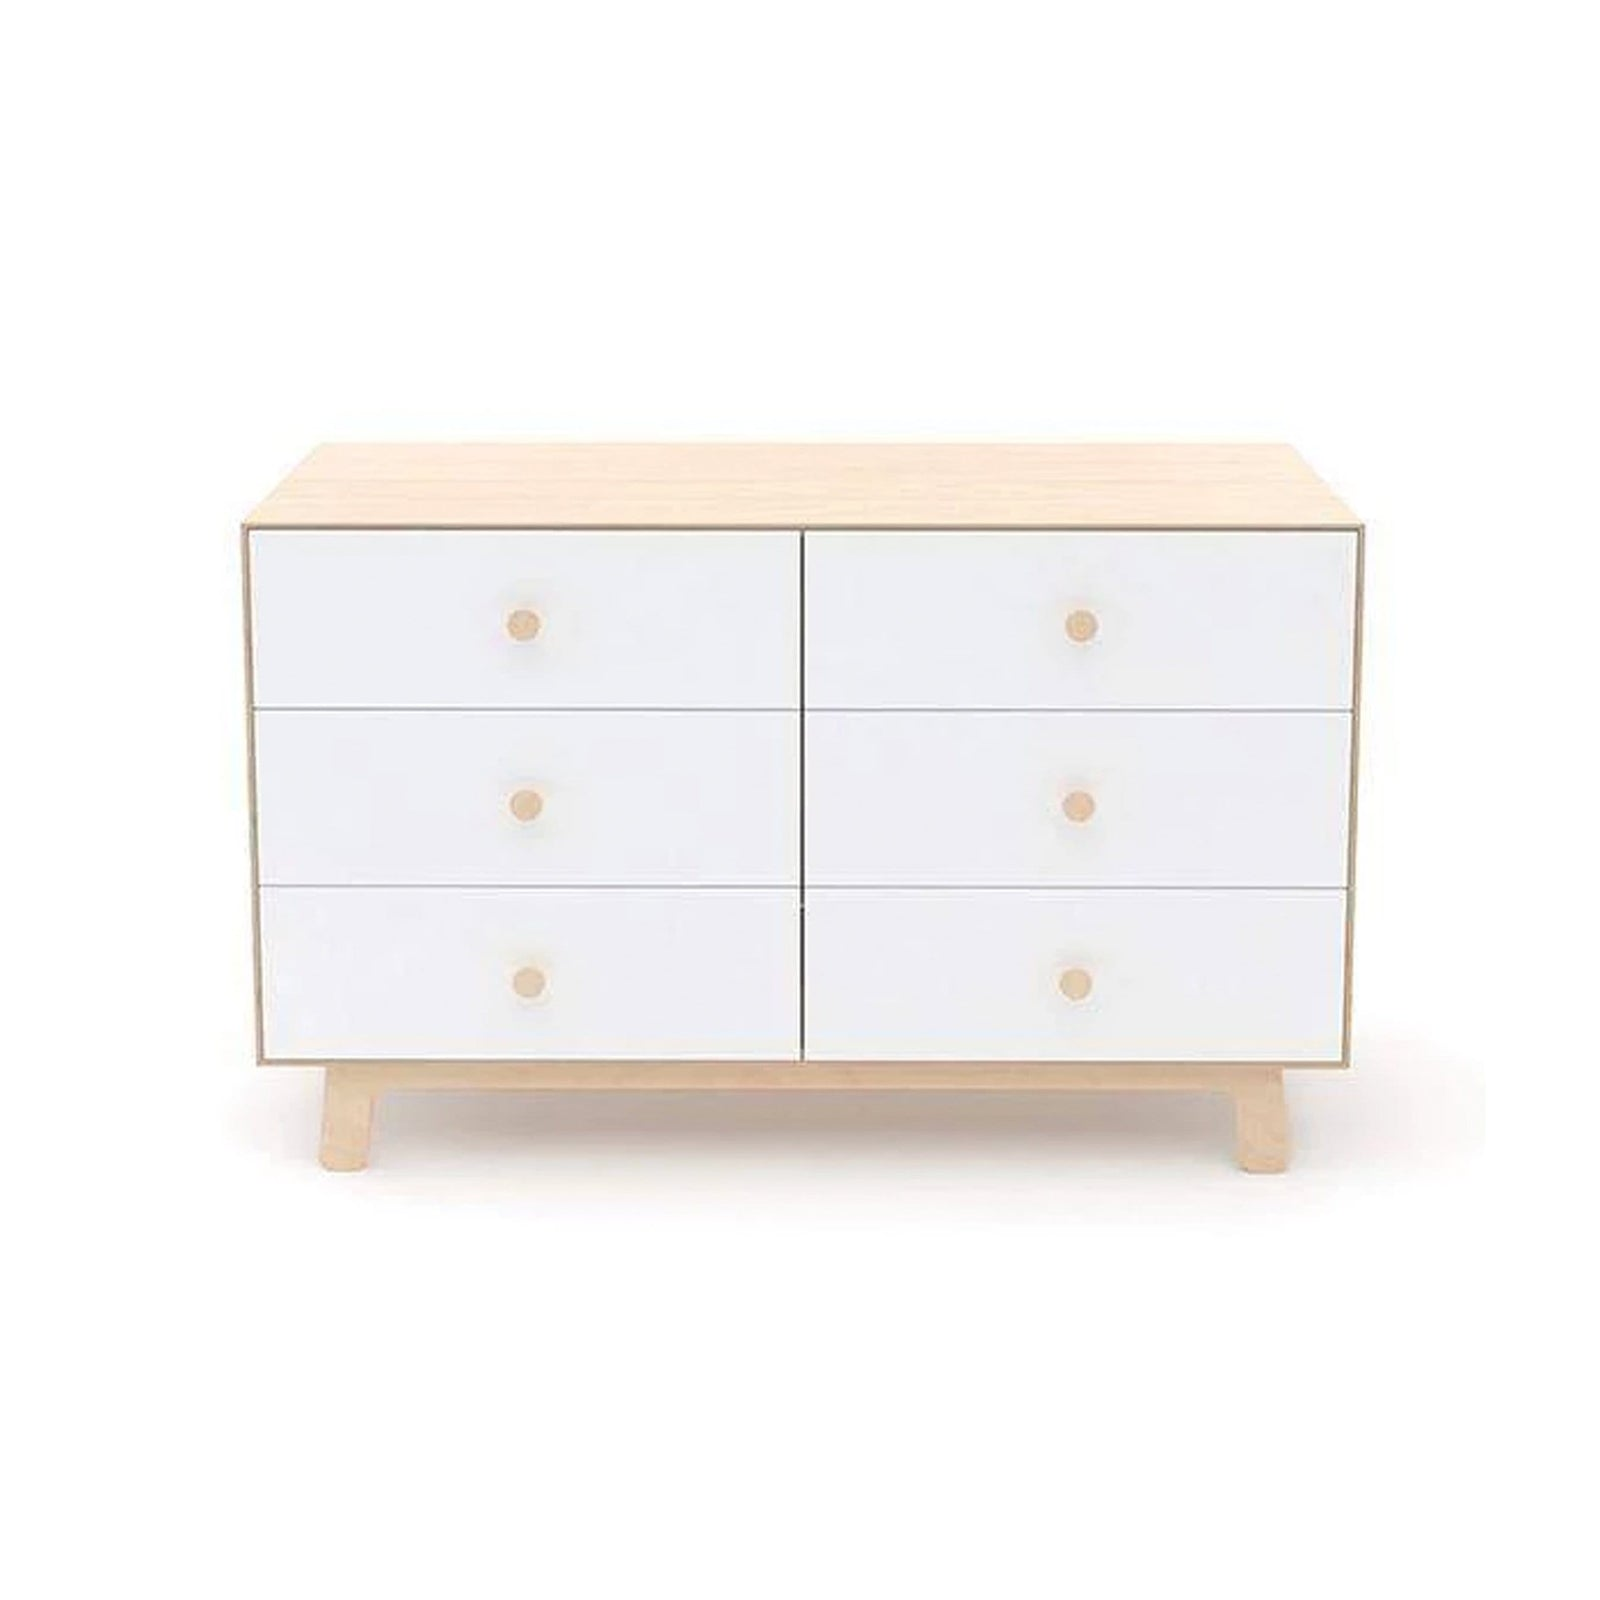 Oeuf Furniture White/Birch Sparrow 6 Drawer Dresser